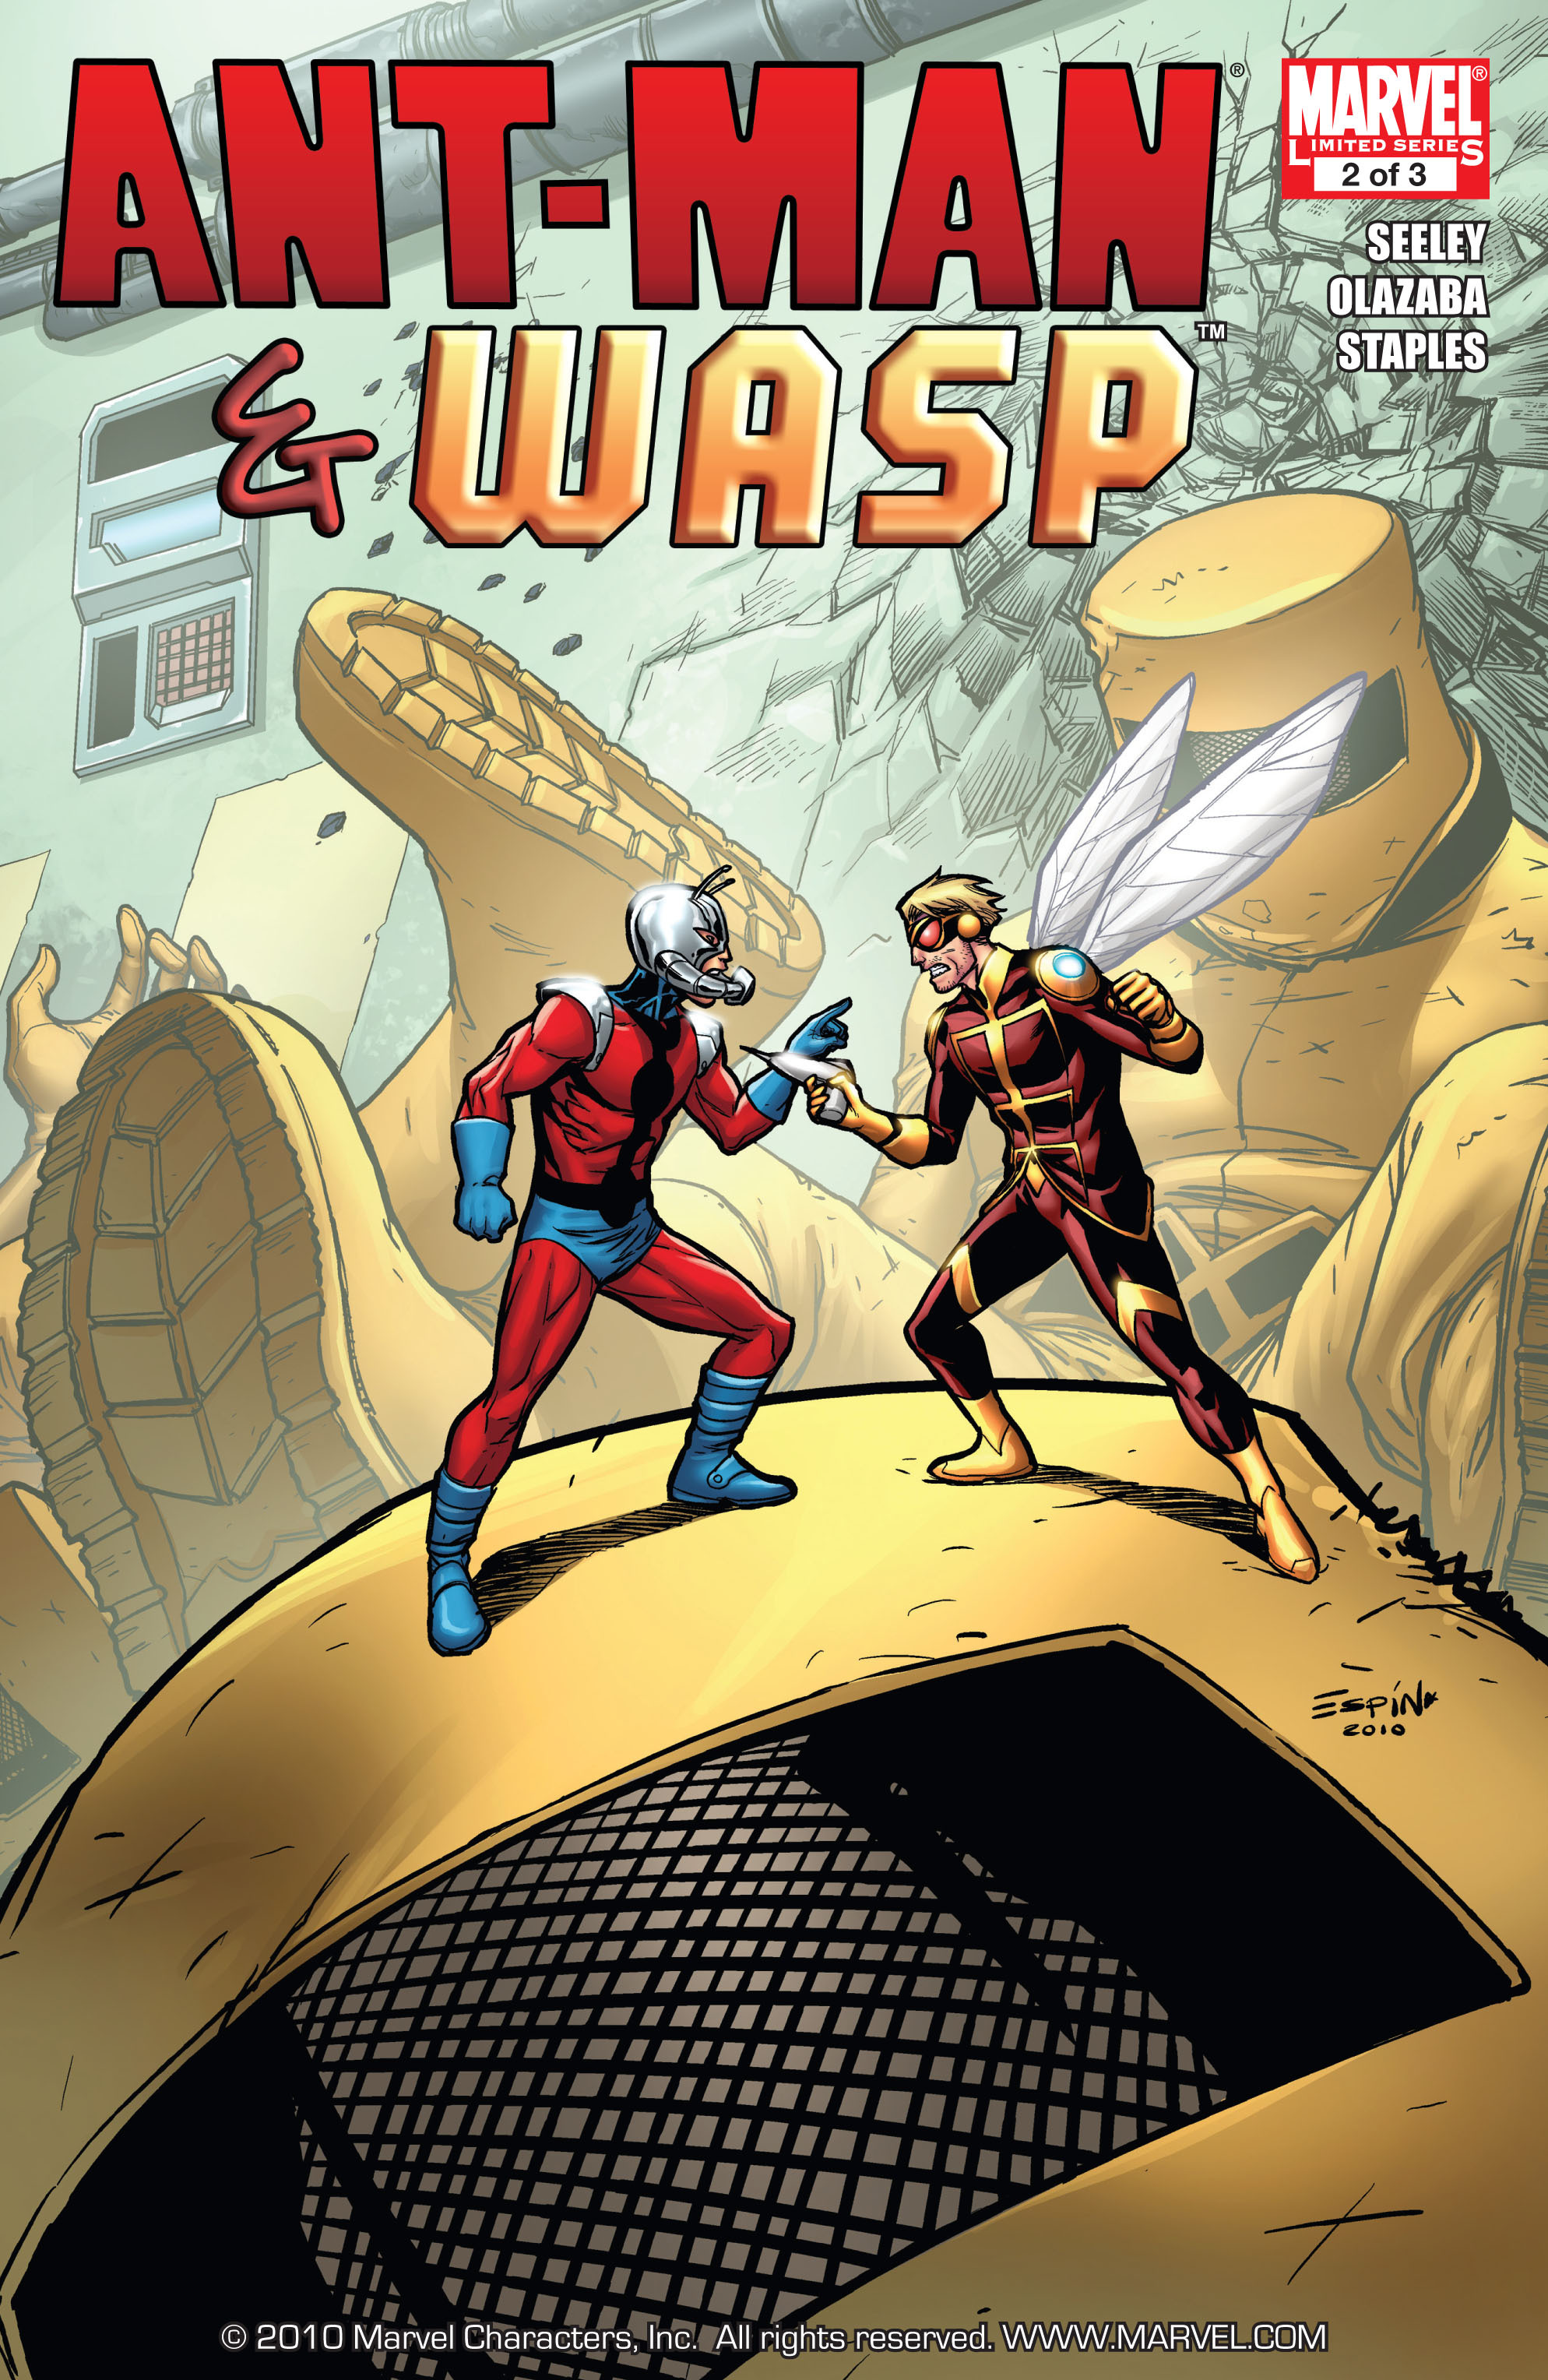 Book Cover Series Wiki : Ant man wasp vol marvel database fandom powered